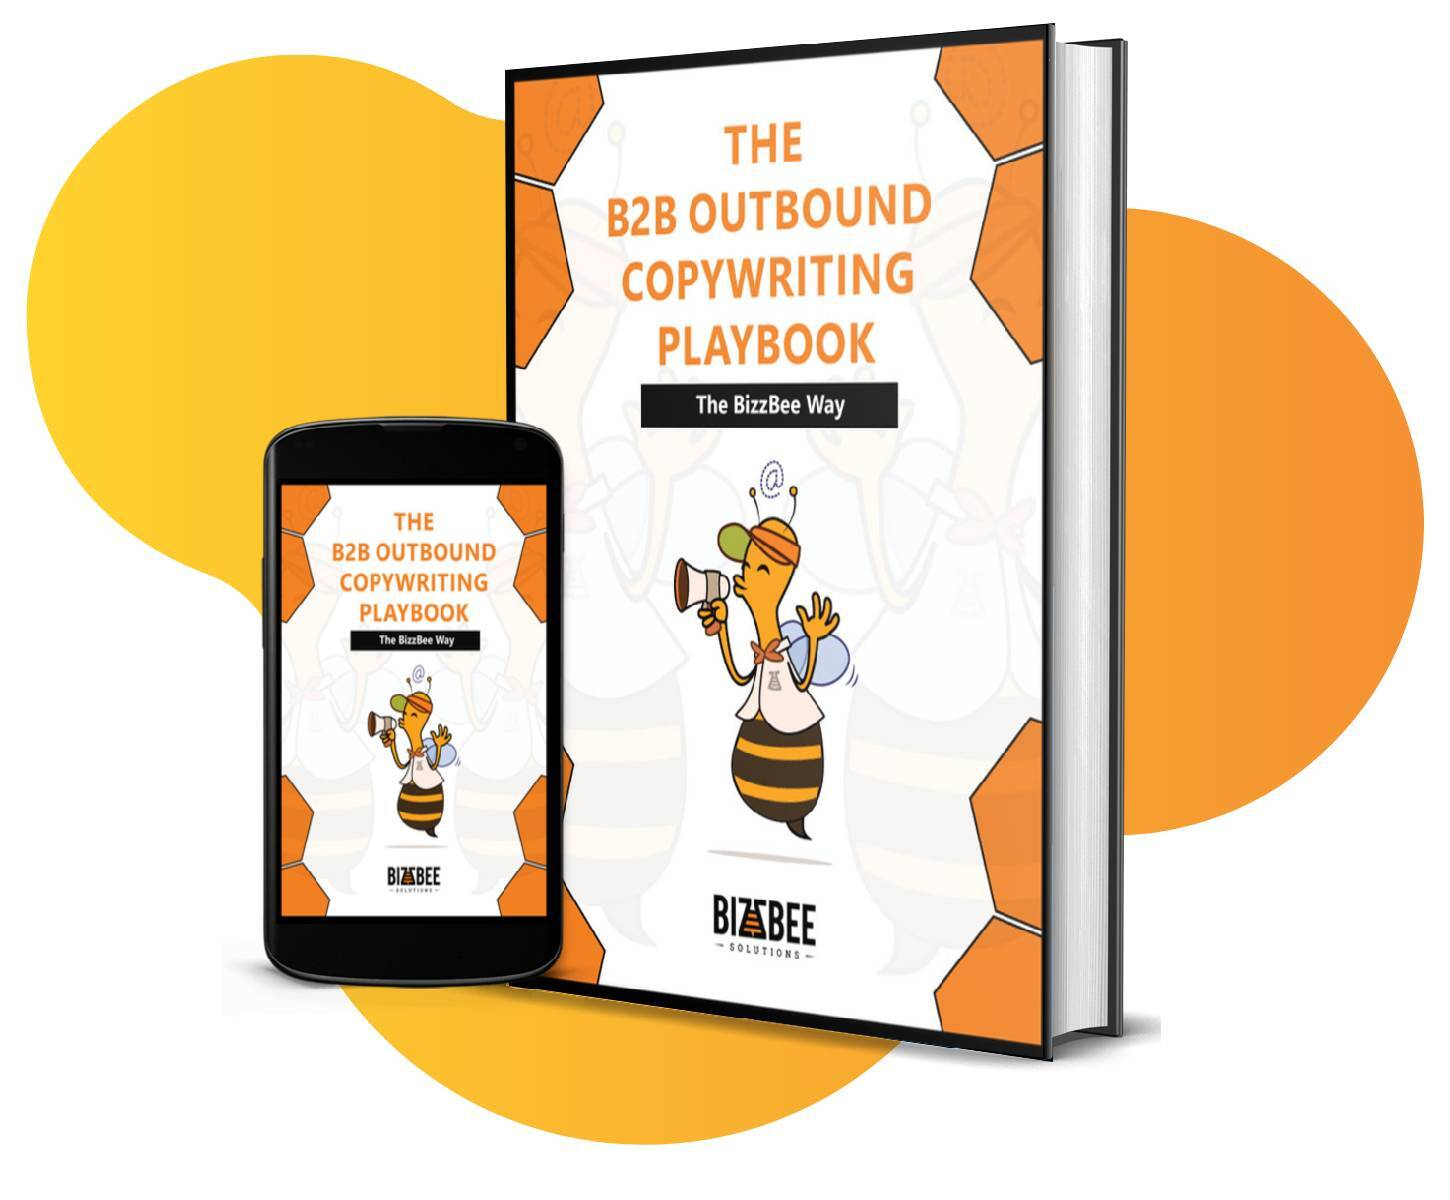 The B2B Outbound Copywriting Playbook - BizzBee's ebook cover mobile and physical book mockup.